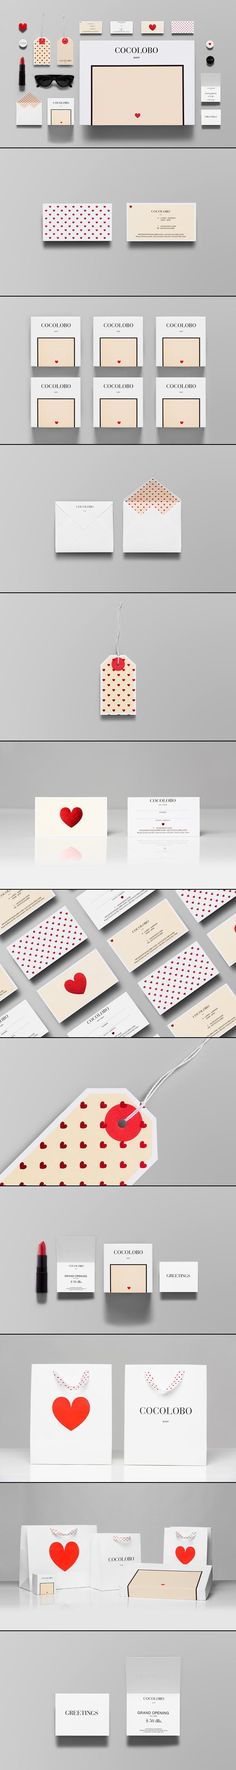 Sweet Cocolobo by Anagrama identity packaging branding PD